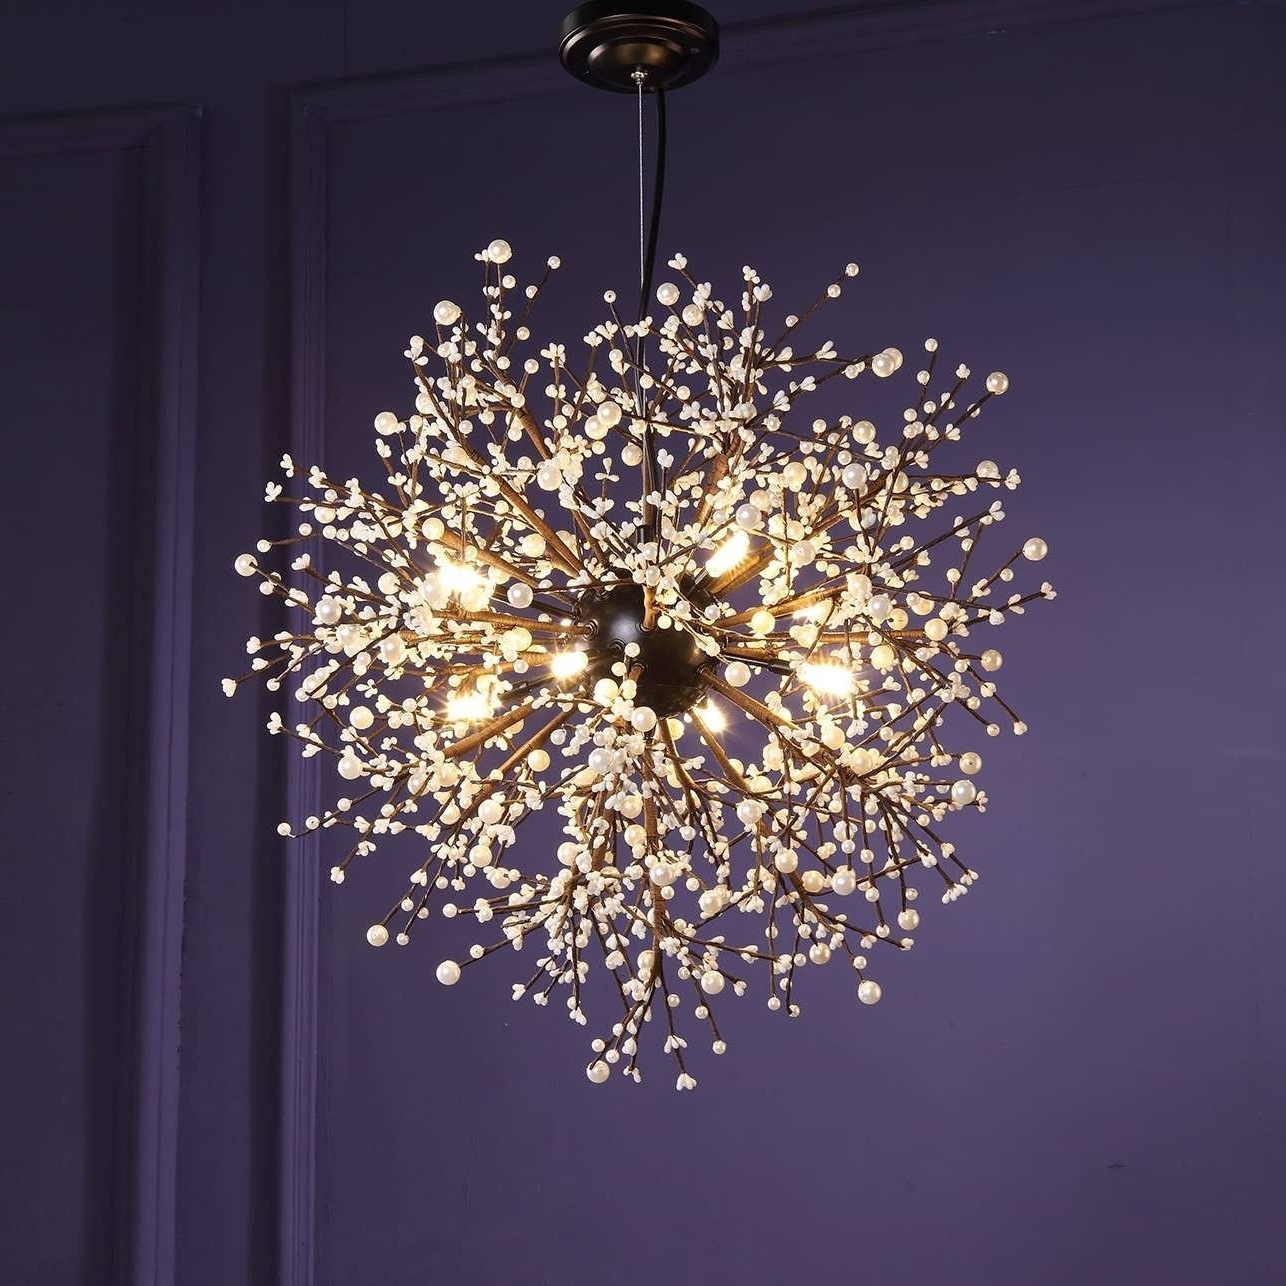 Chandeliers Design : Marvelous Amazing Glass Ball Chandelier Light For Best And Newest Turquoise Ball Chandeliers (View 6 of 15)